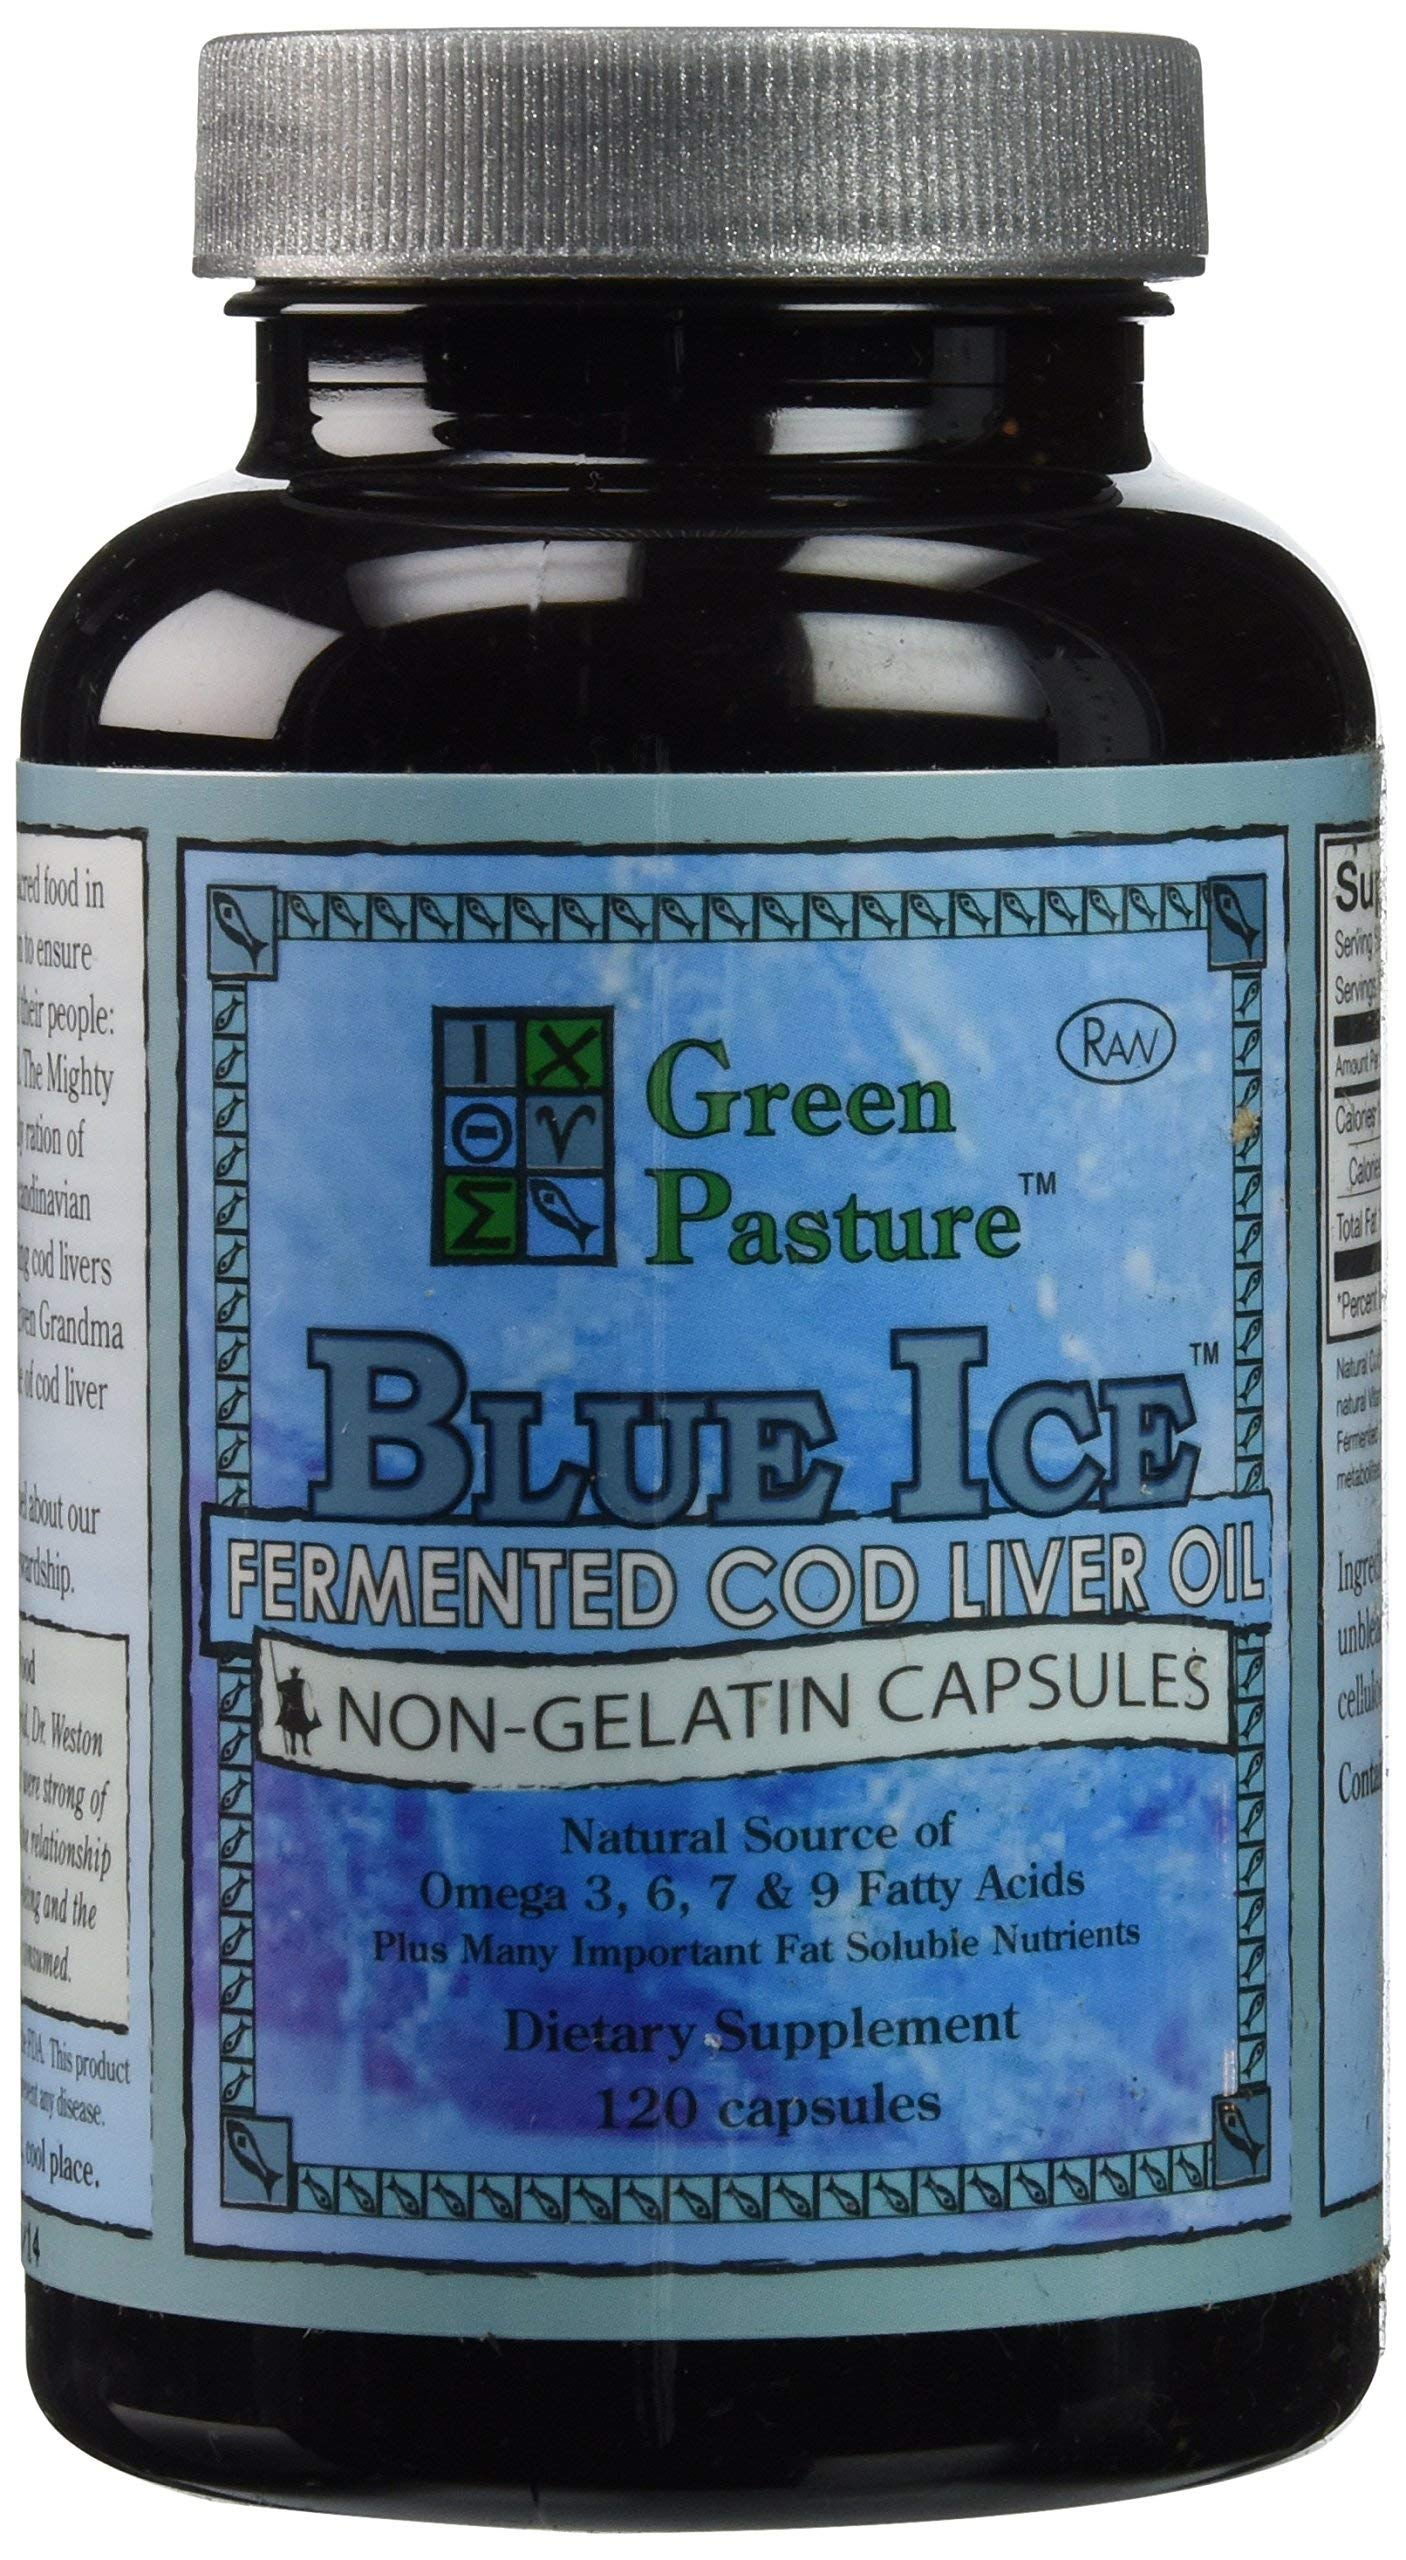 BLUE ICE Fermented Cod Liver Oil -Non-Gelatin Capsules (2 Pack) by Green Pasture